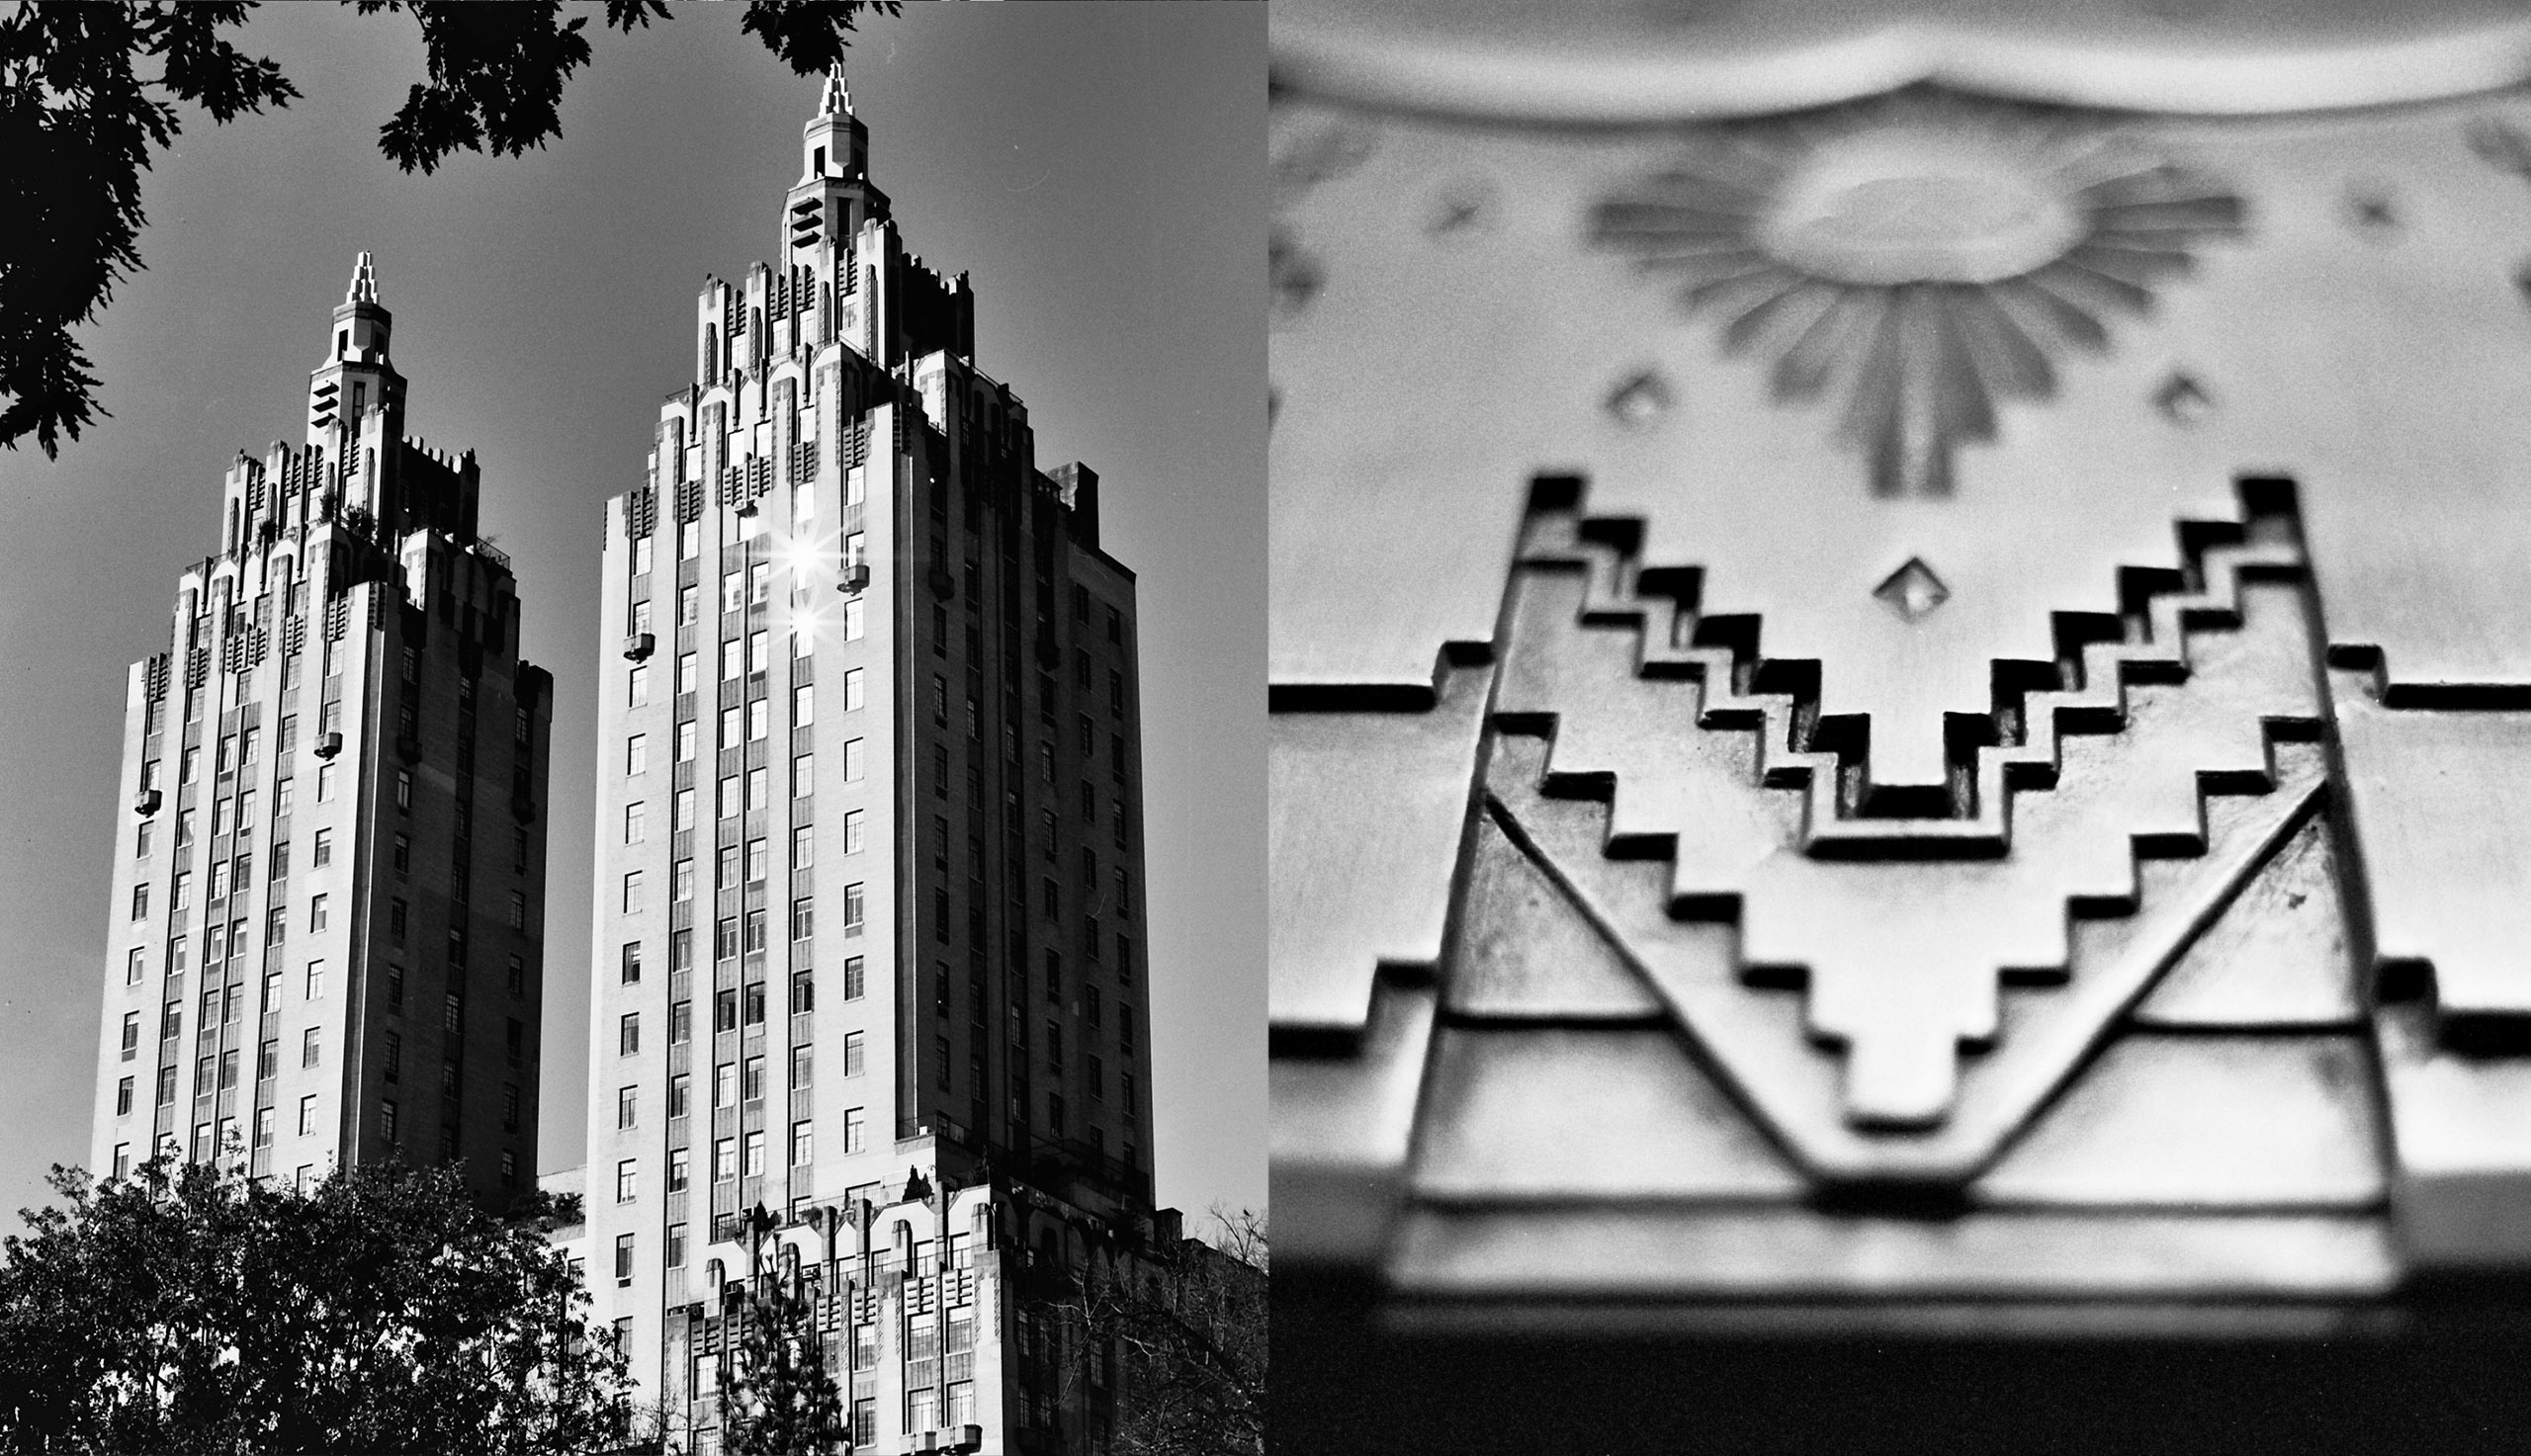 Left: The towers of the El Dorado. Right: a detail from the lobby of 100 Barclay